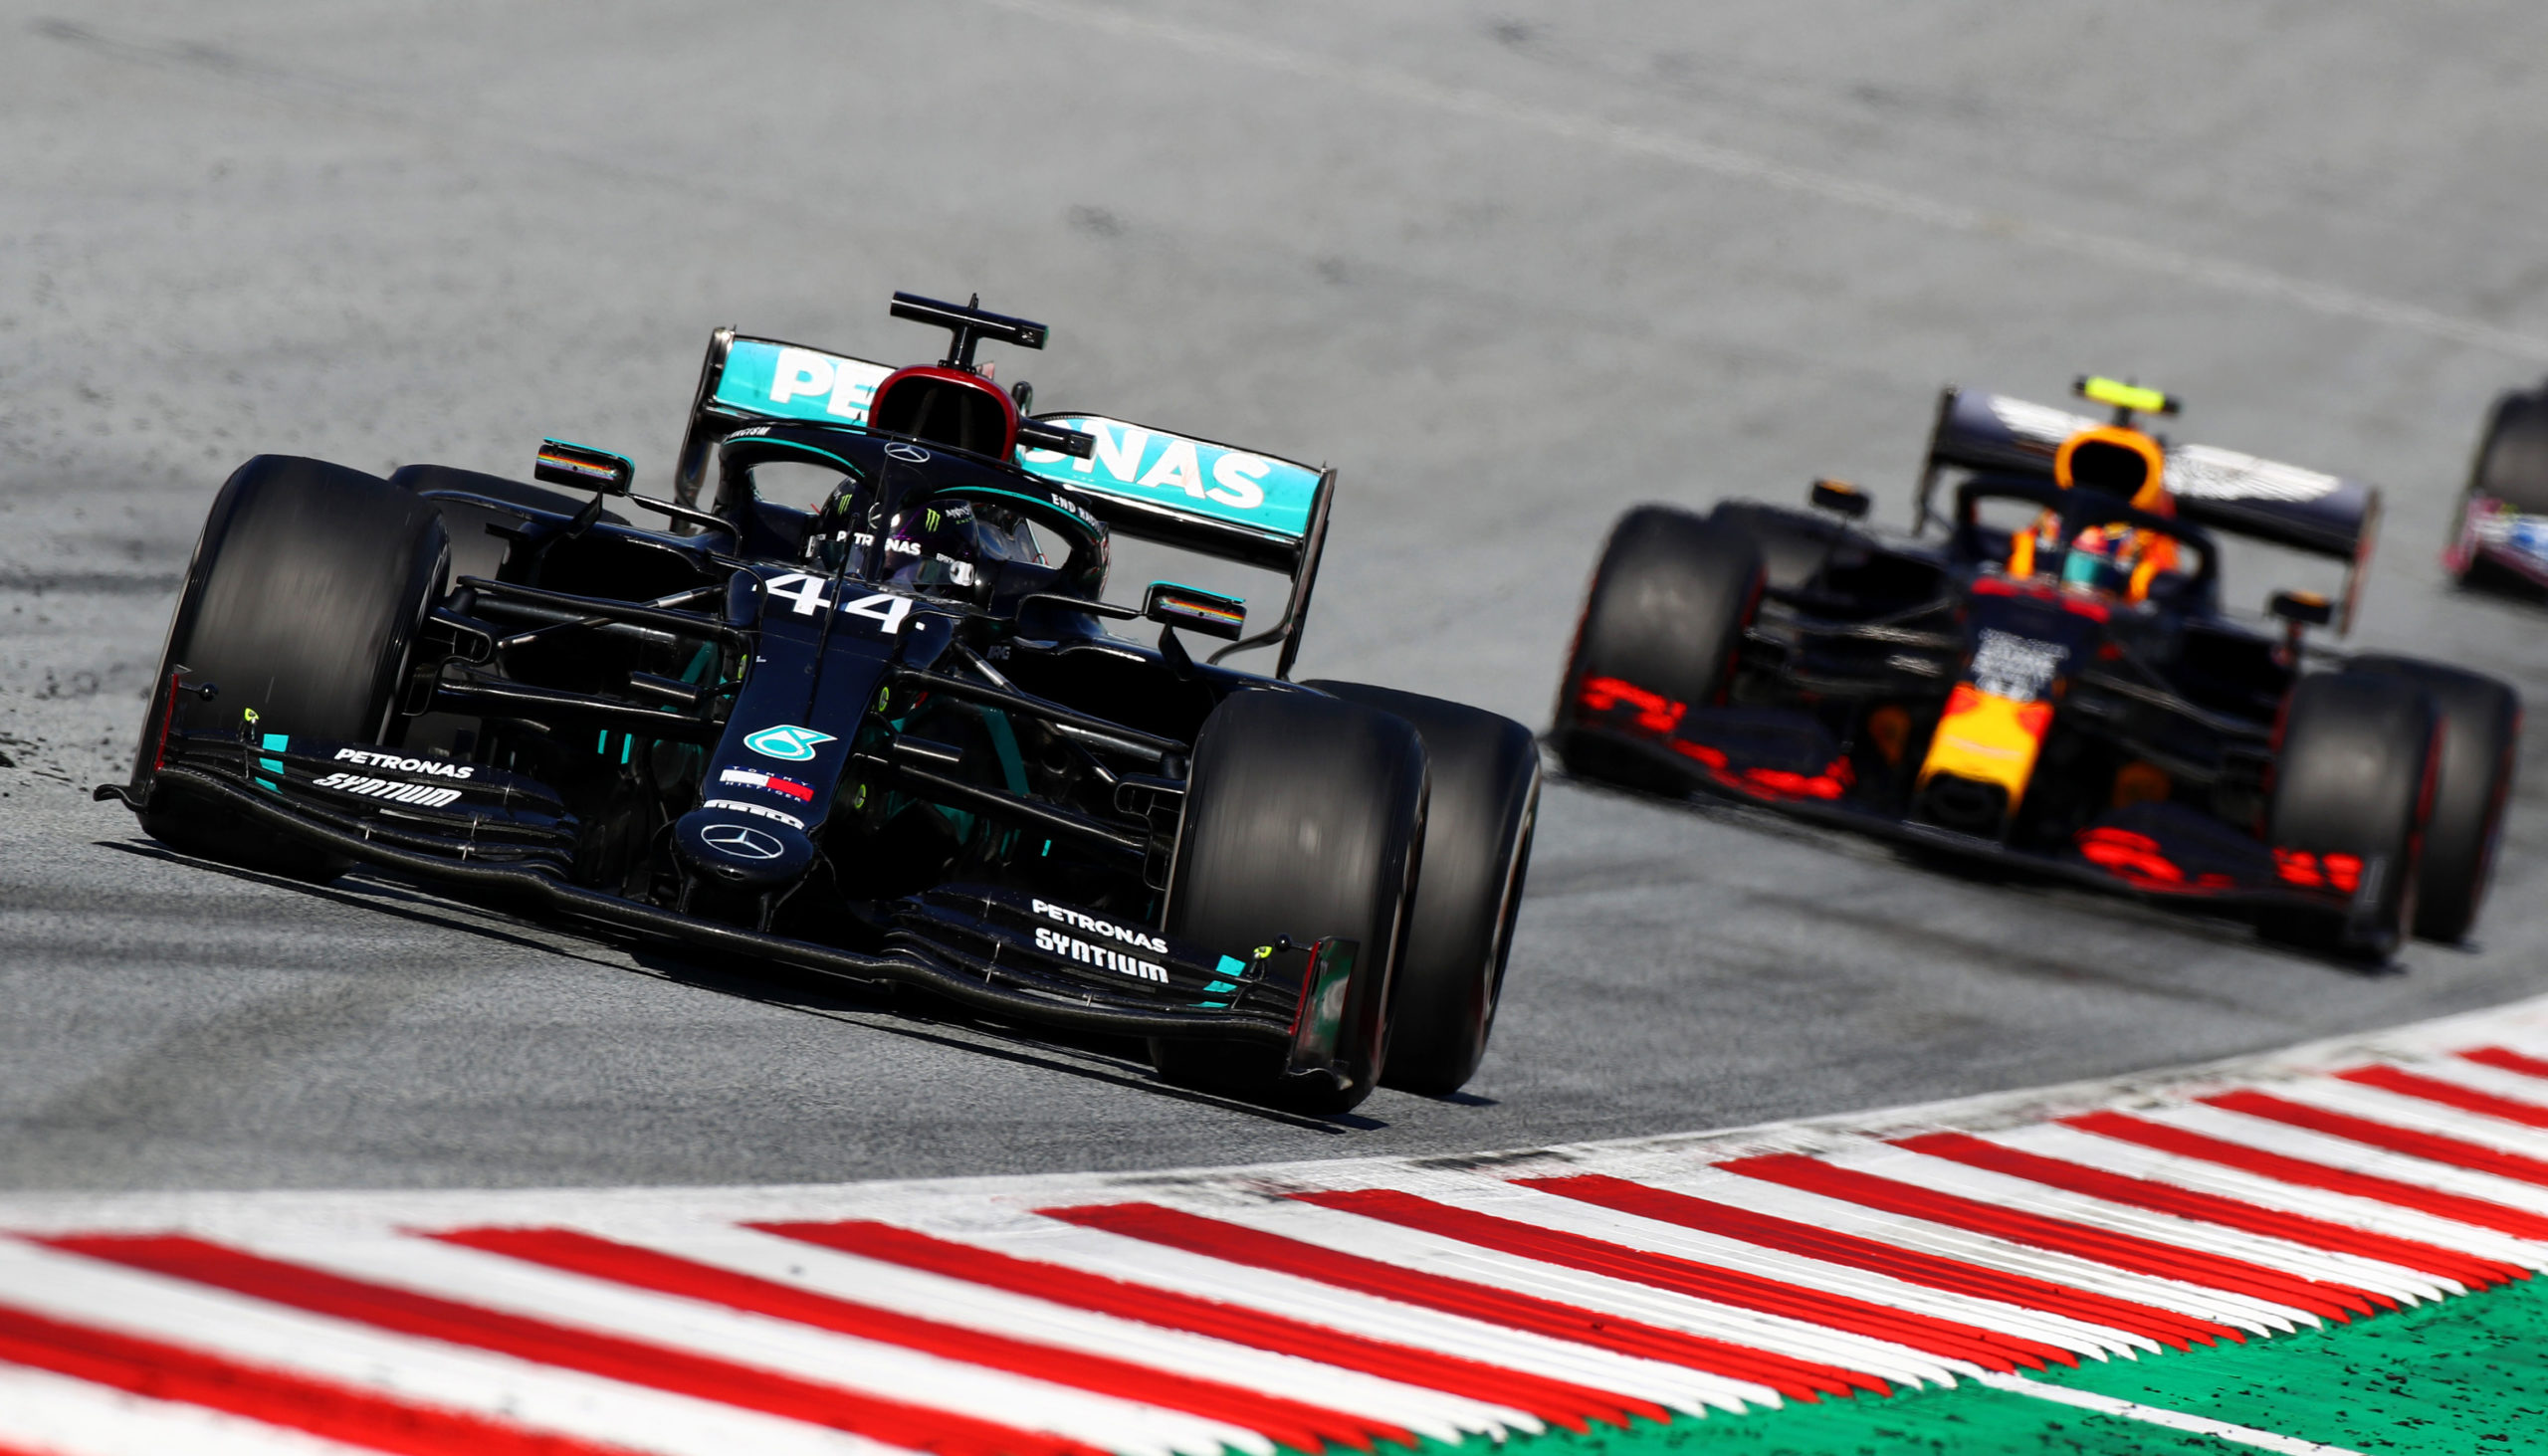 Austrian Grand Prix: Hamilton to make amends